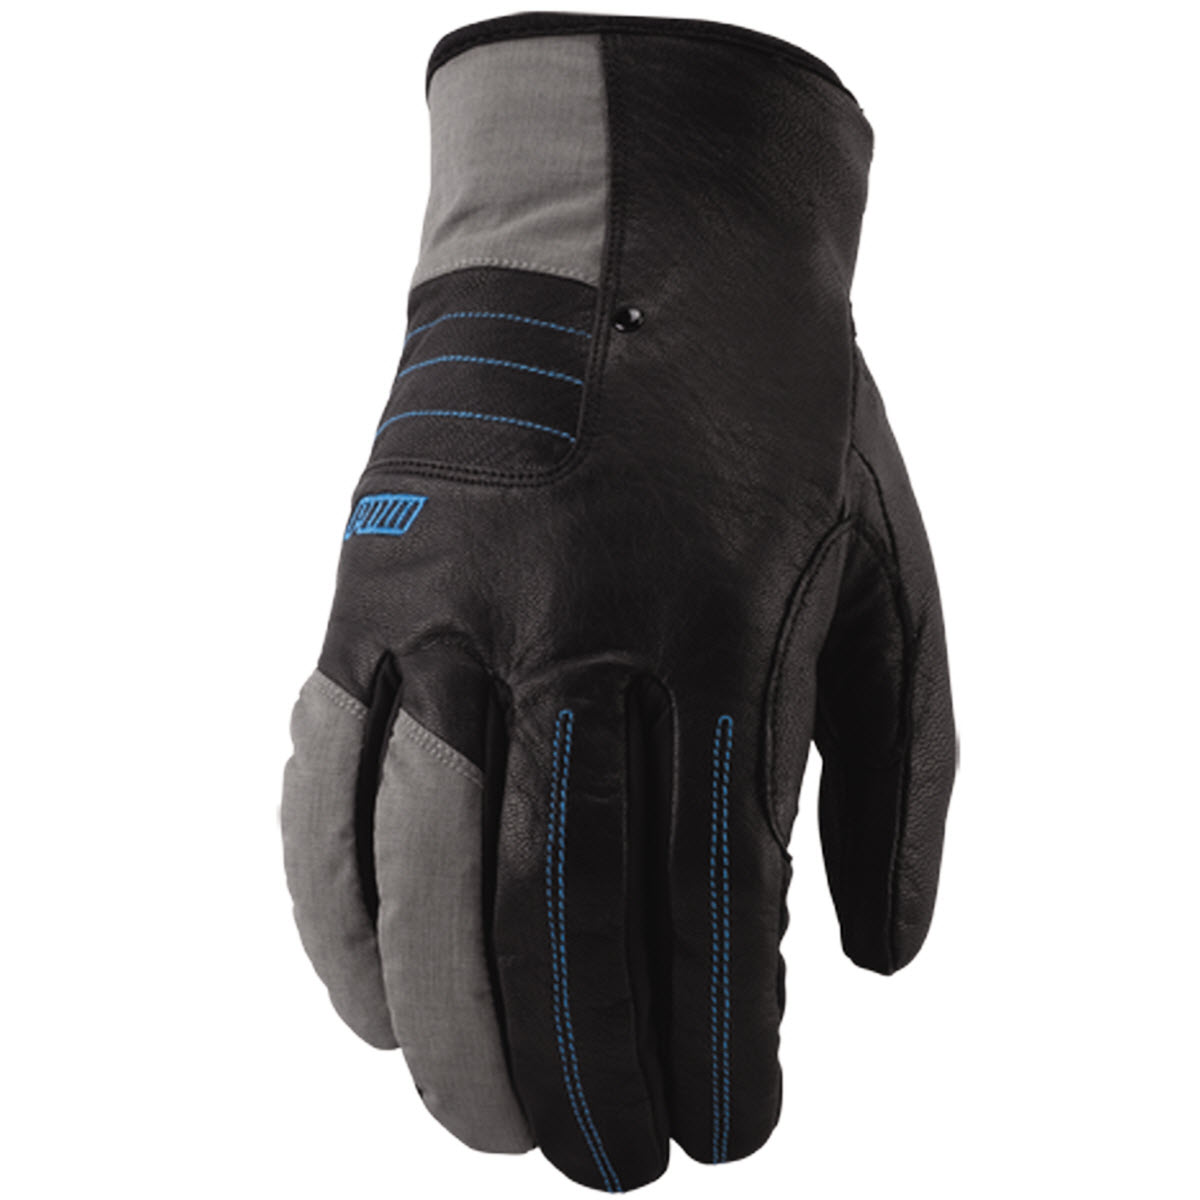 Pow Villain Snowboard Gloves 2013 in Grey Large